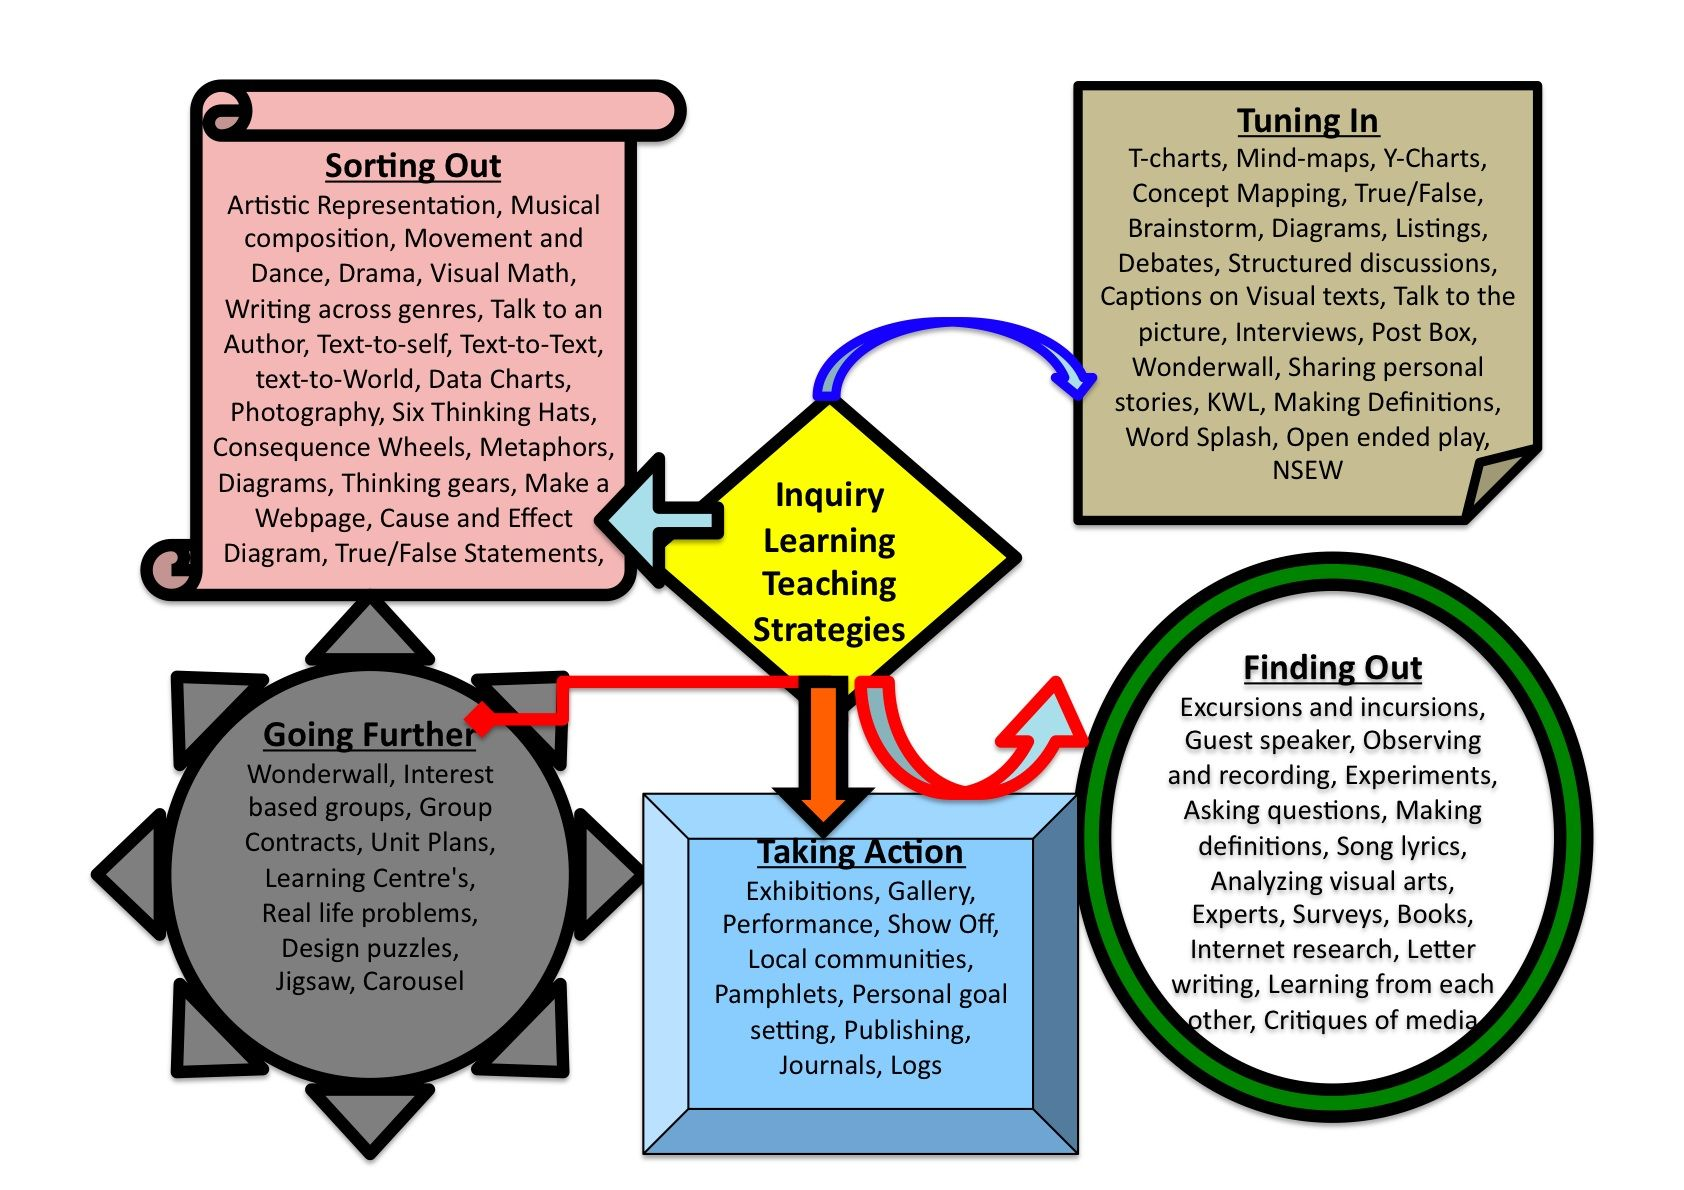 information about strategic teaching strategic learning Active learning strategies help to initiate learners and faculty into effective ways to help learners engage in activities based on ideas about how people learn multiple active learning strategies may be used in each of the active learning designs.